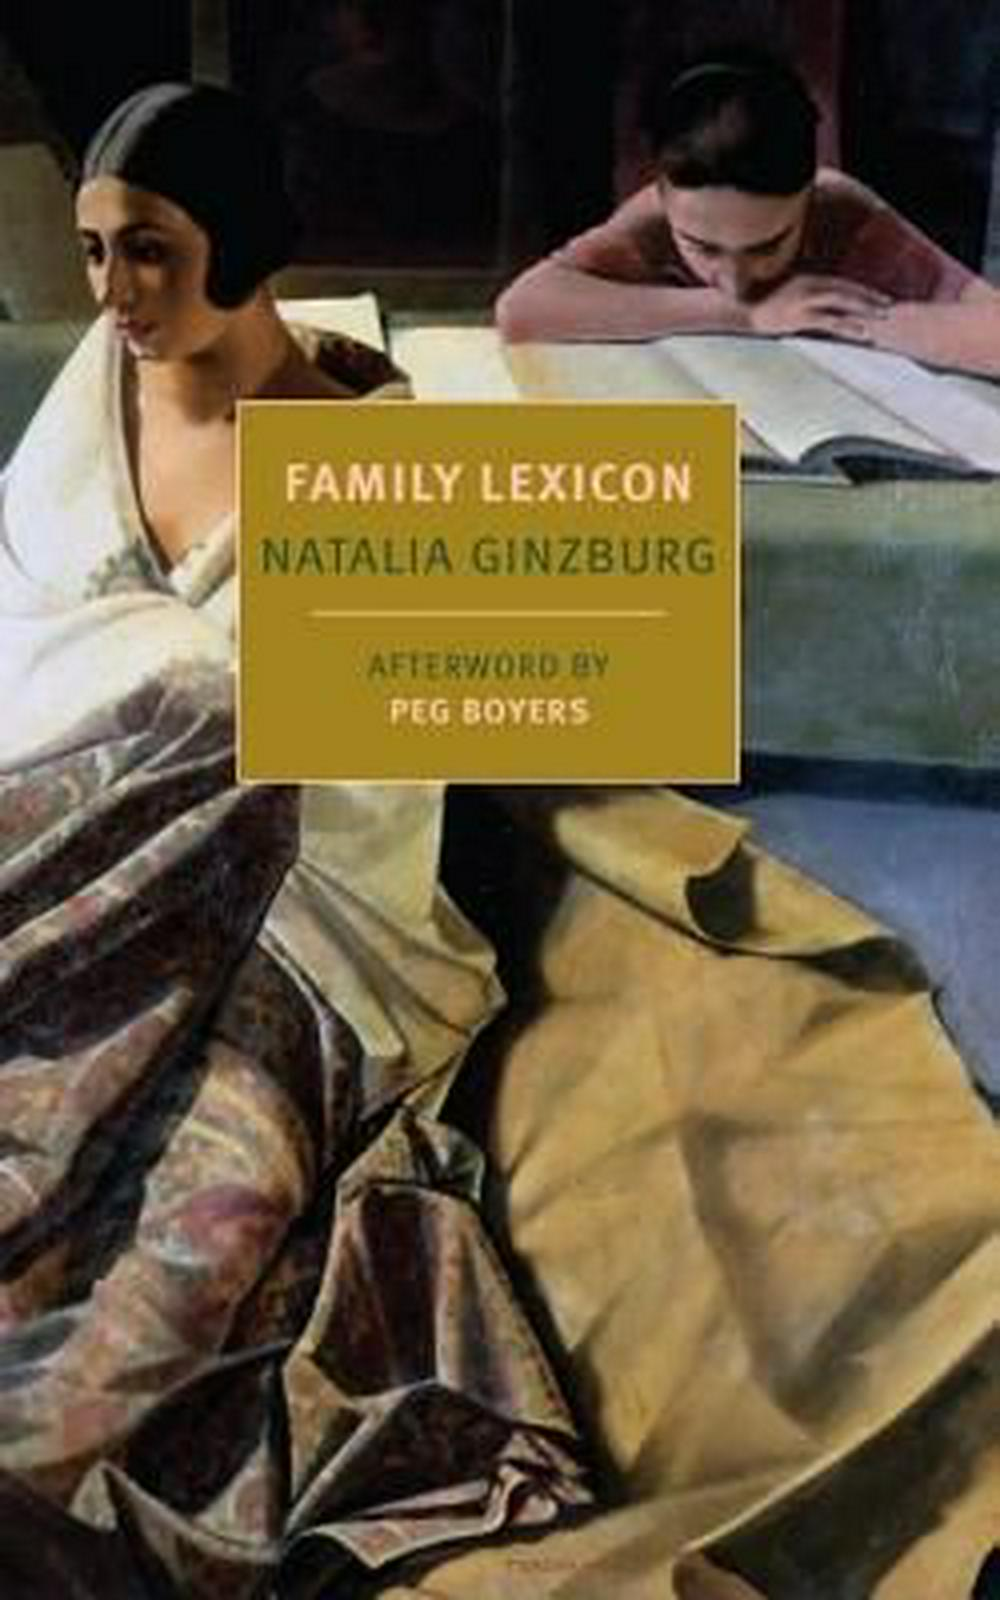 A Family Lexicon